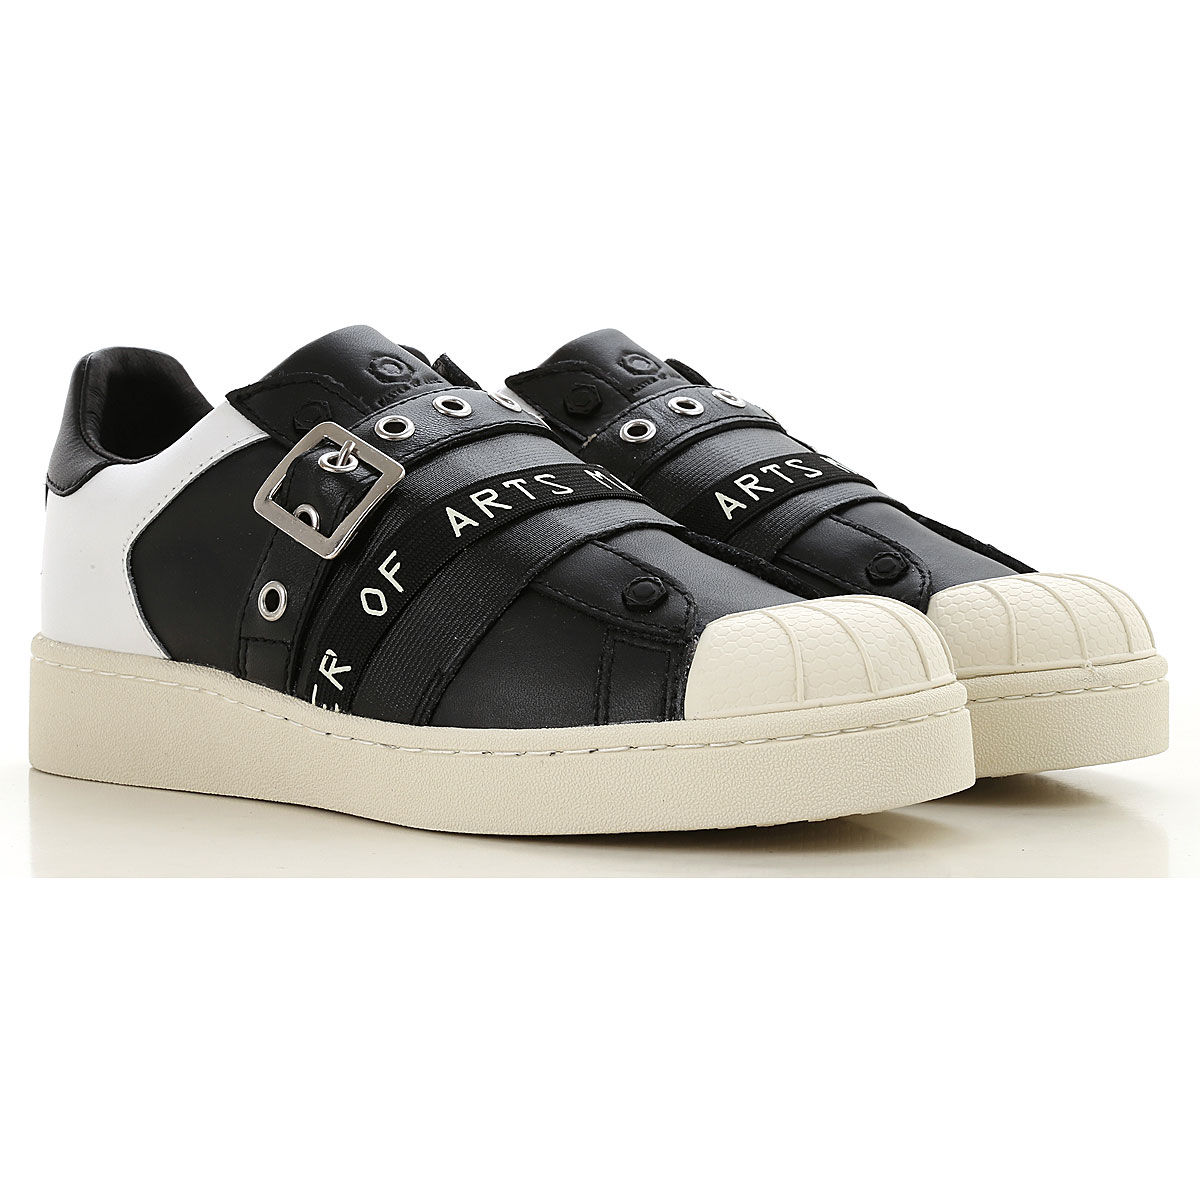 Image of Moa Master of Arts Slip on Sneakers for Women, Black, Leather, 2017, 10 6 7 8 9